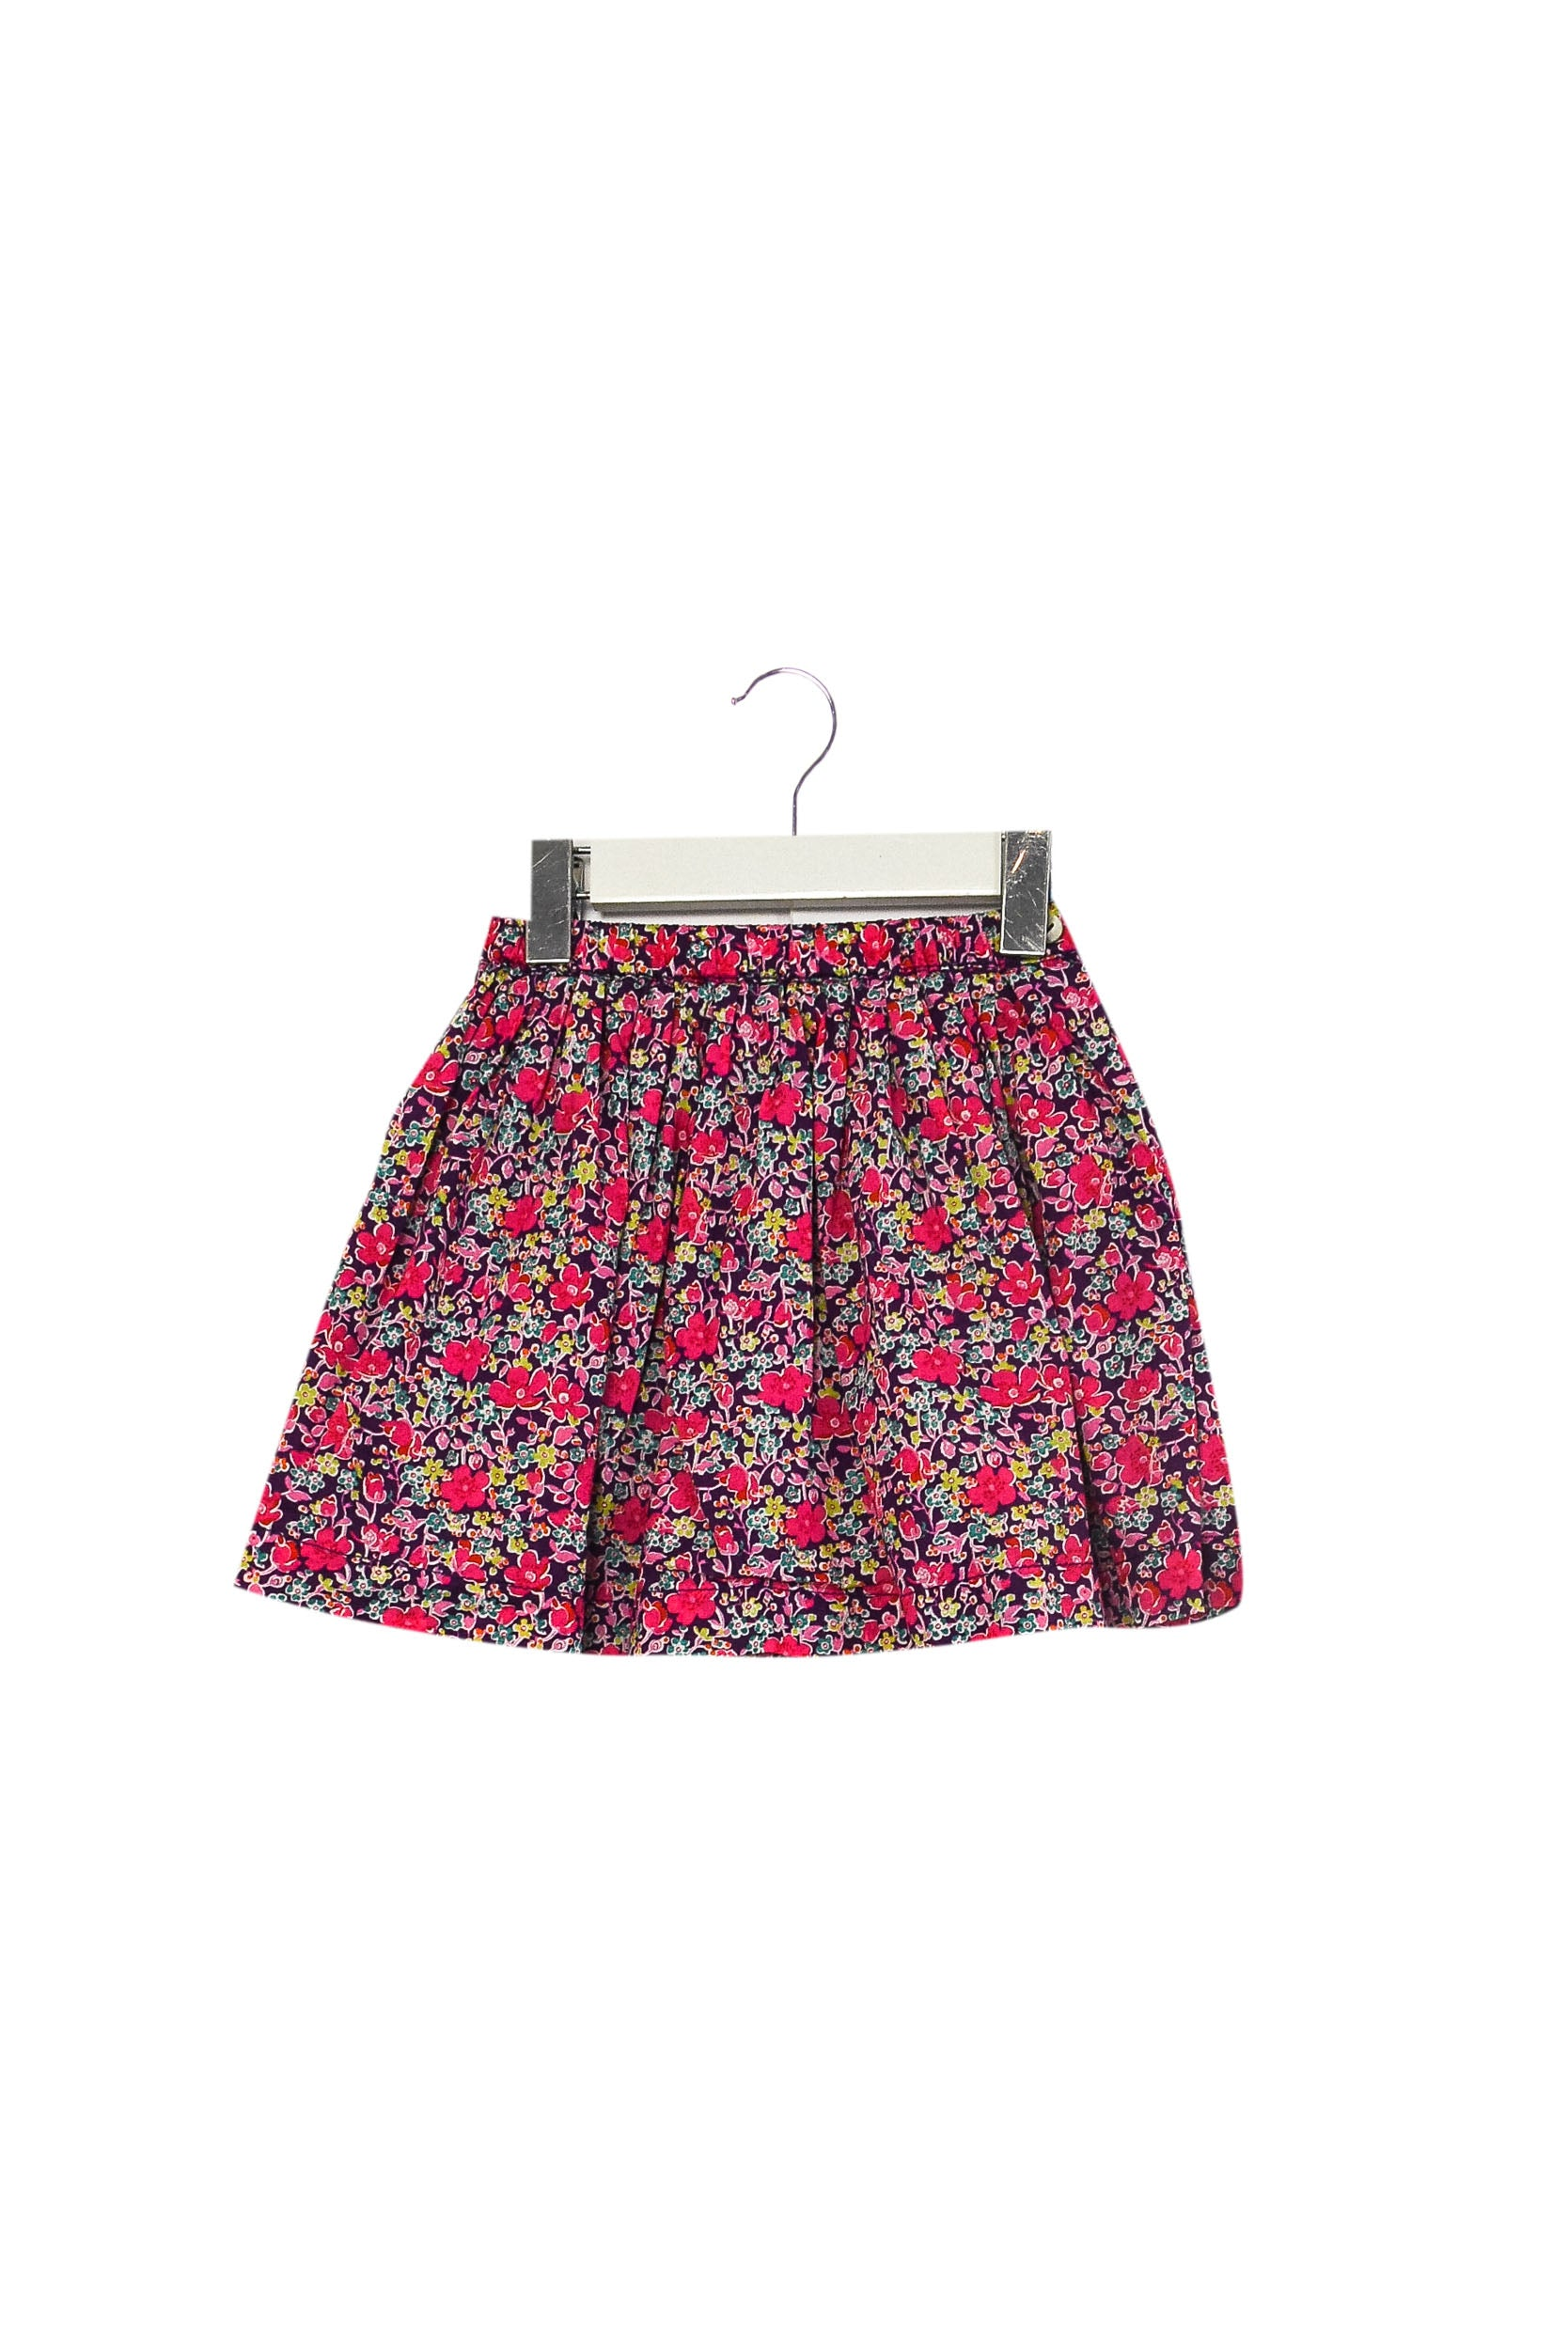 Short Skirt 2 - 3T at Retykle